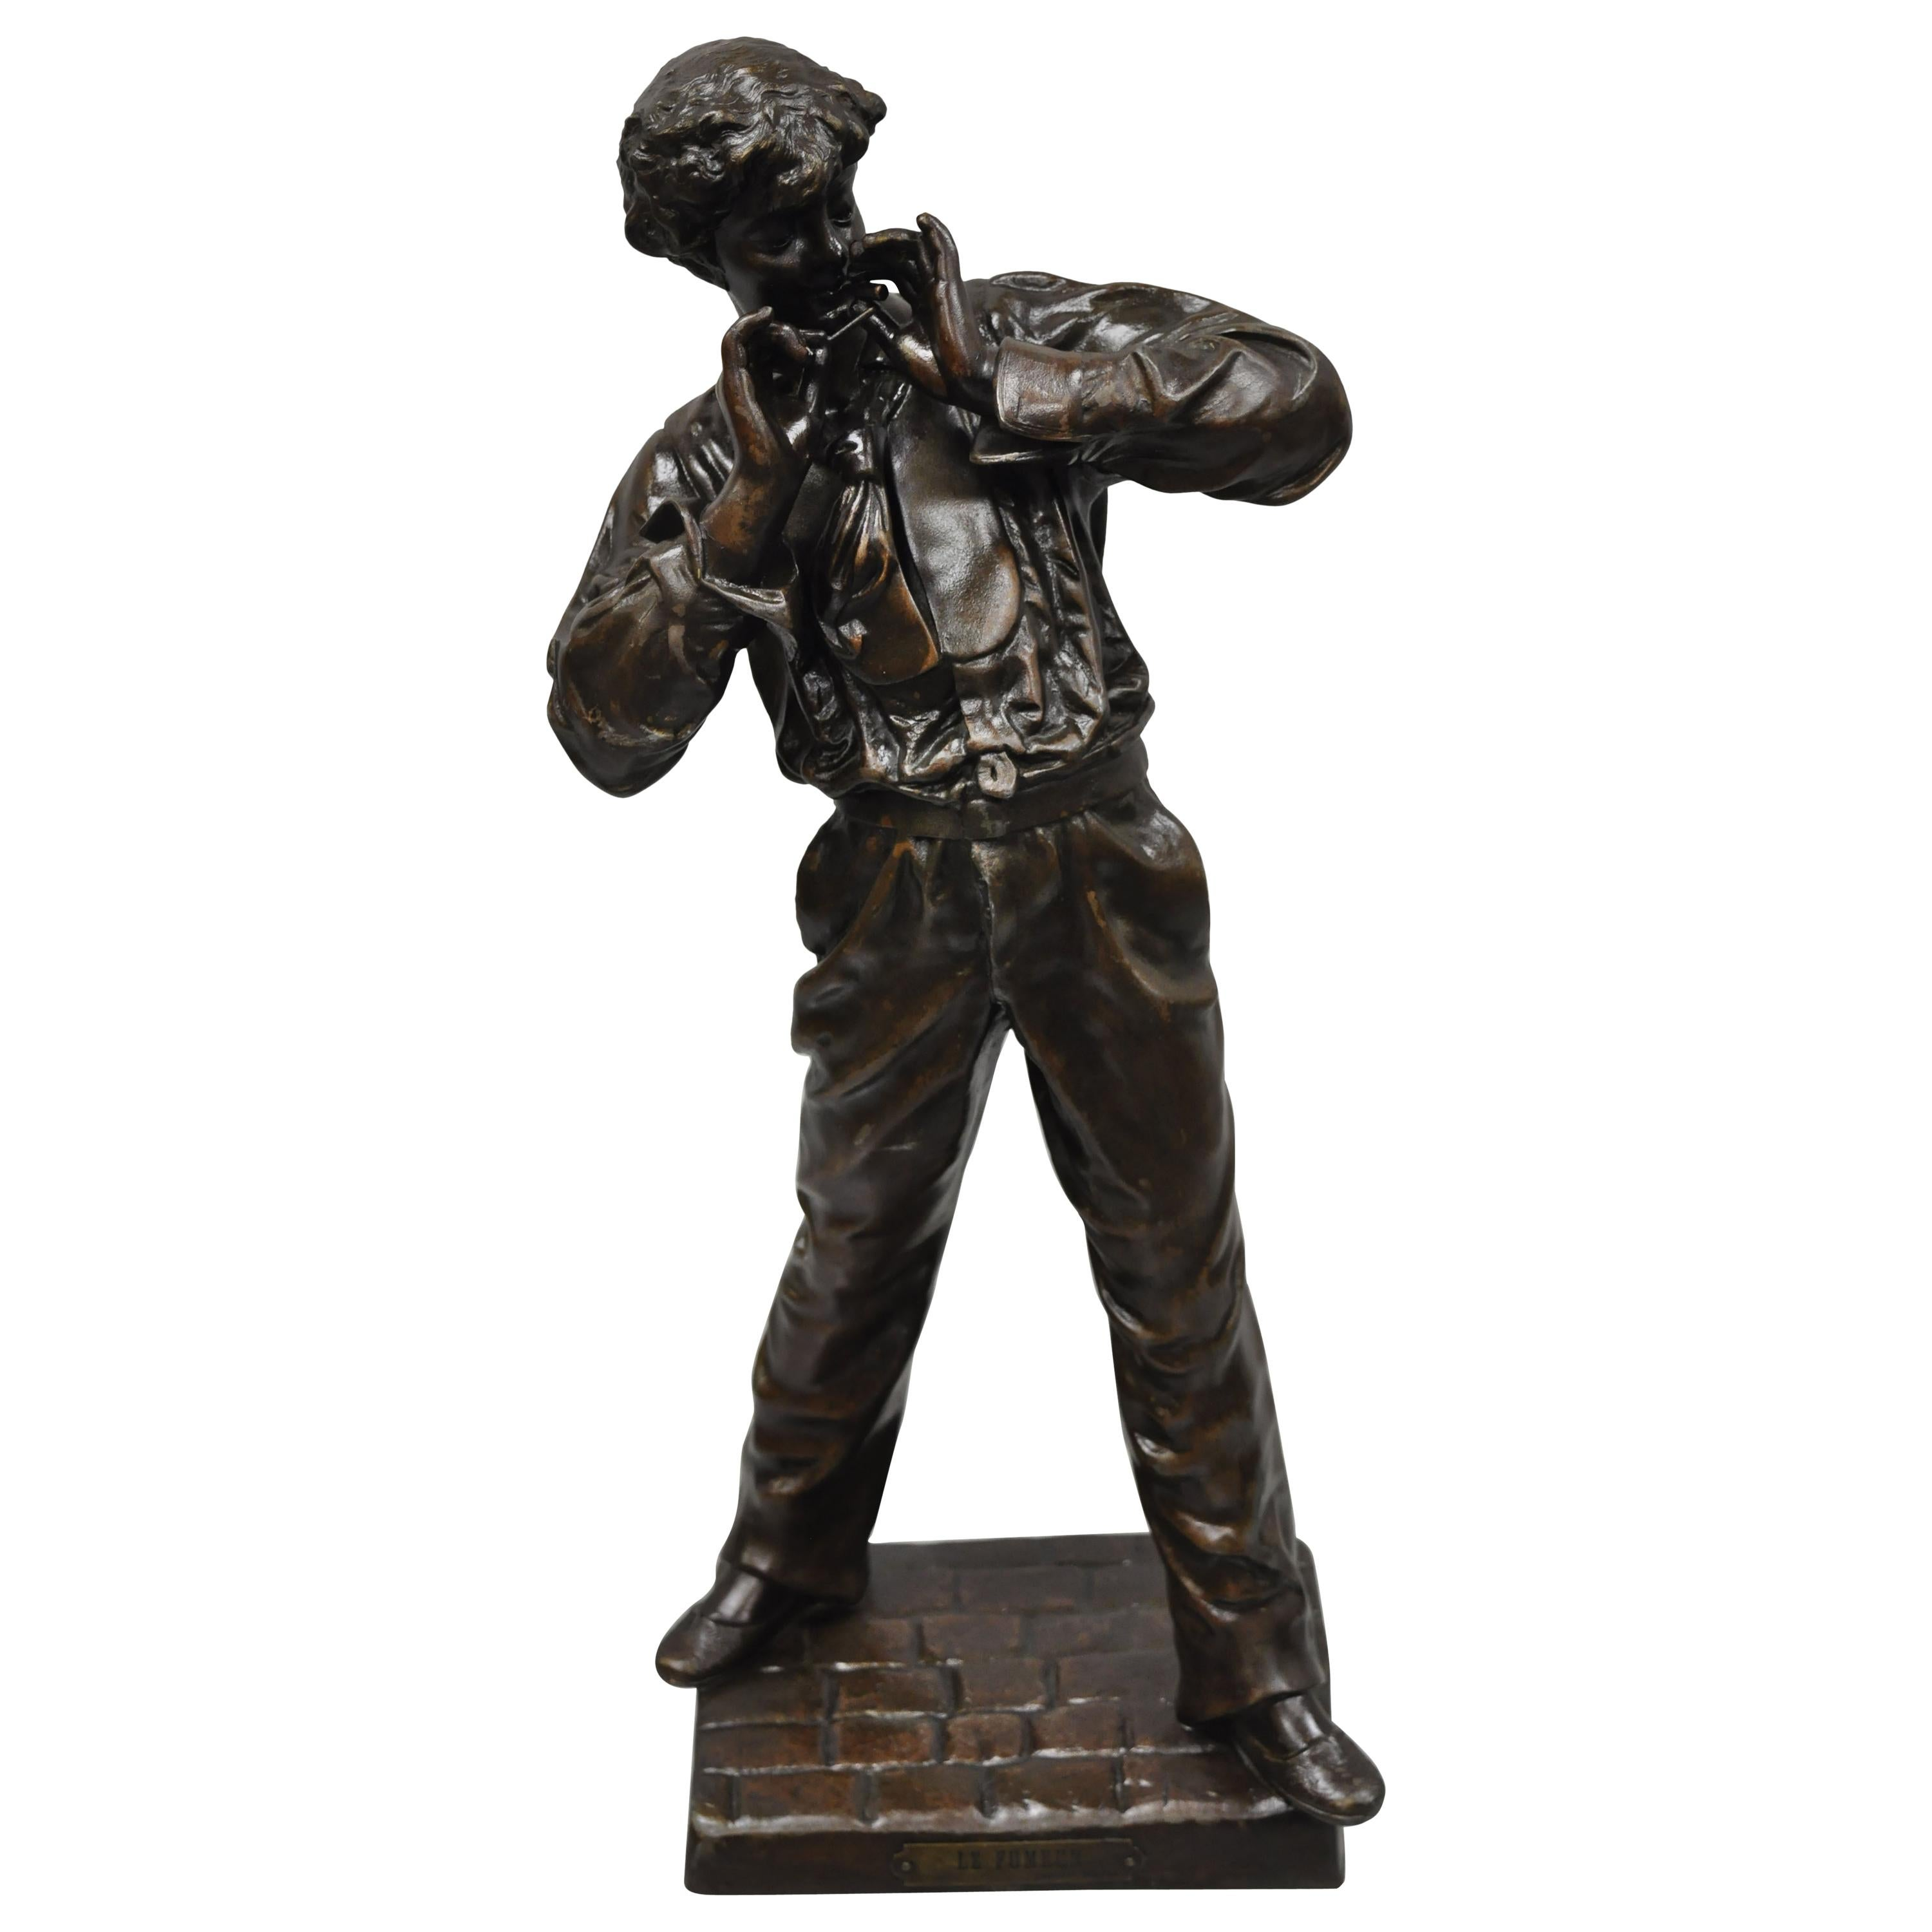 Le Fumeur French Spelter Statue Sculpture of Young Man Smoking by Charles Masse